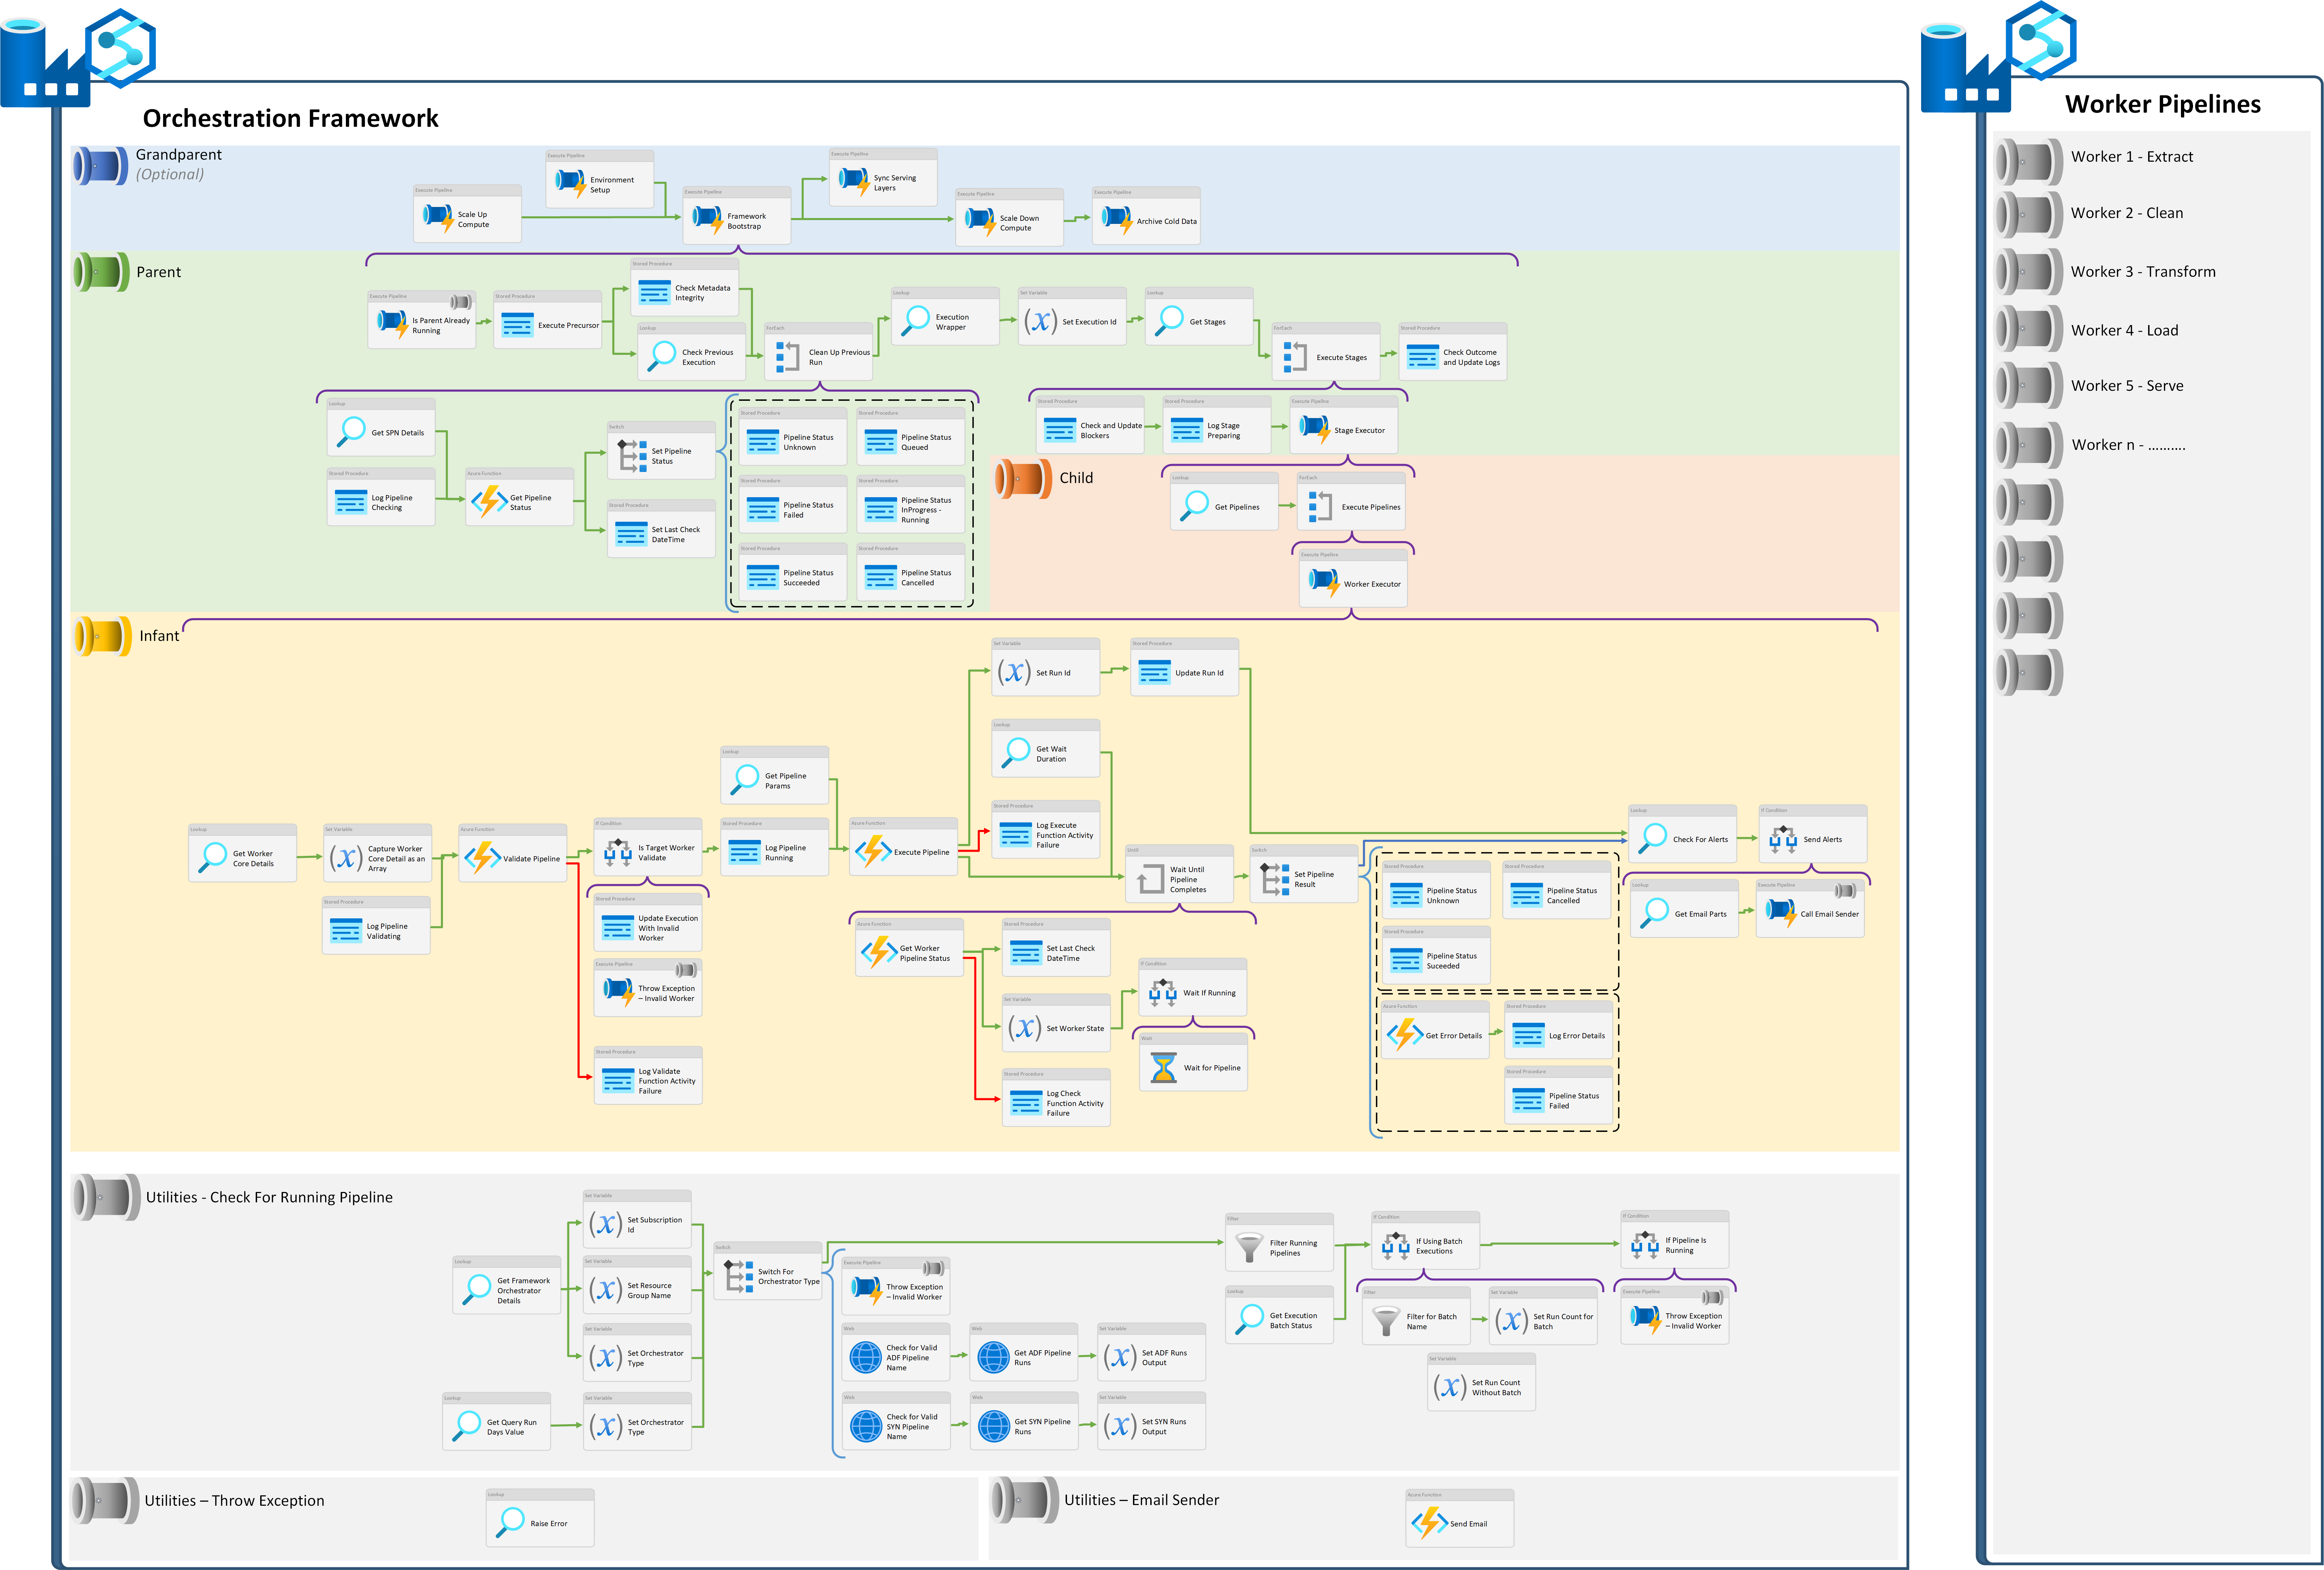 A view of all pipeline activities at every level within the processing framework if flattened out onto a single canvas. This applies regardless of the orchestrator type.